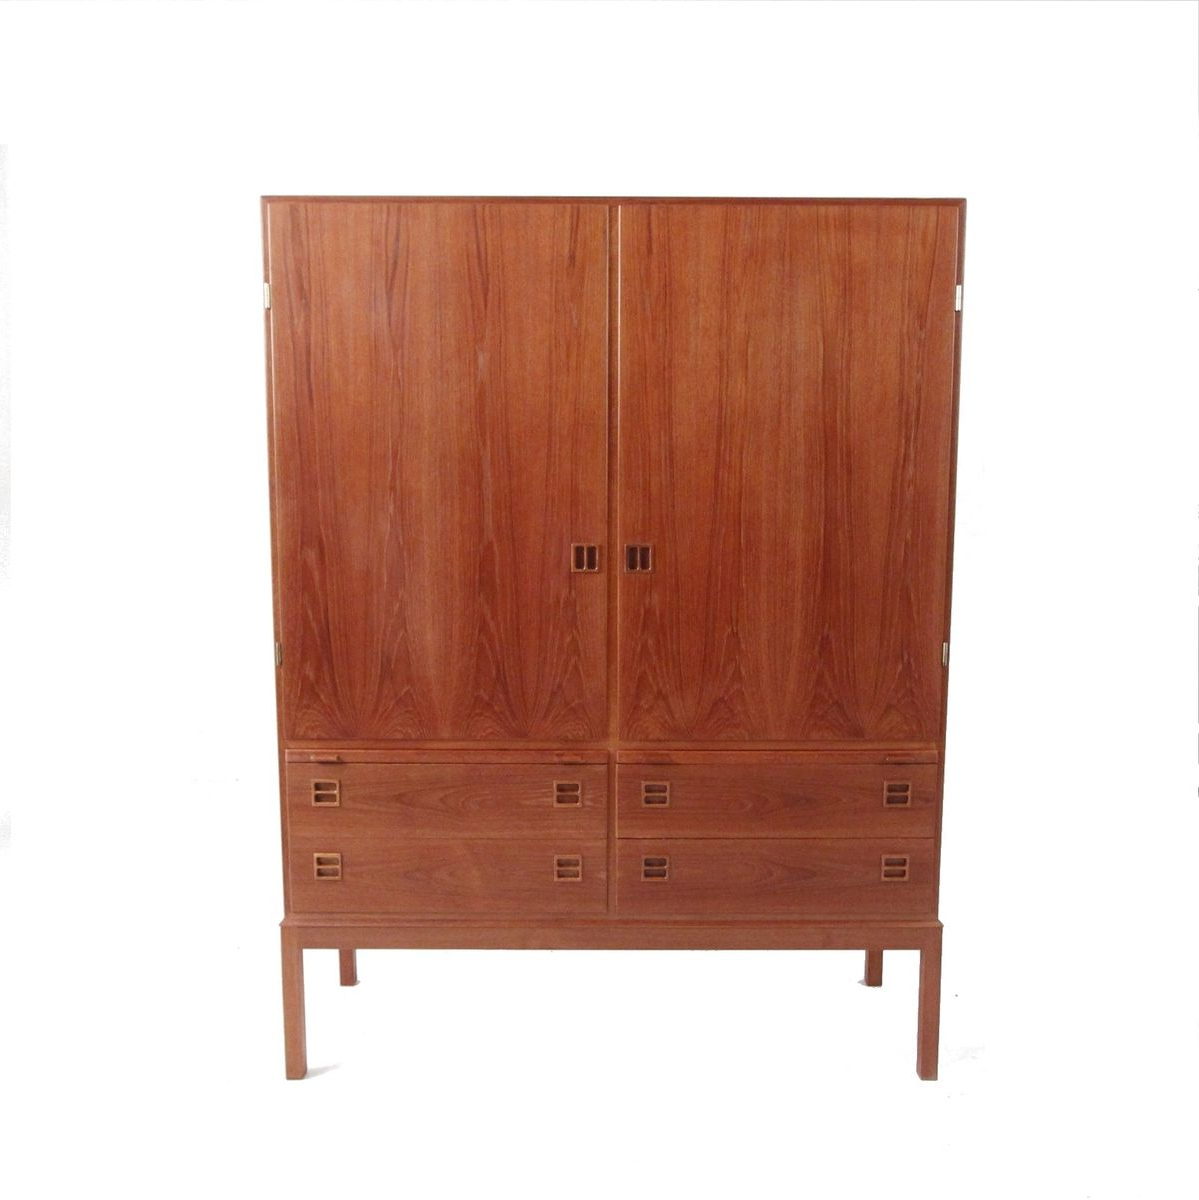 Vintage Danish Modern Teak Veneer Buffet Throughout Modern Teak Buffets (Gallery 14 of 20)